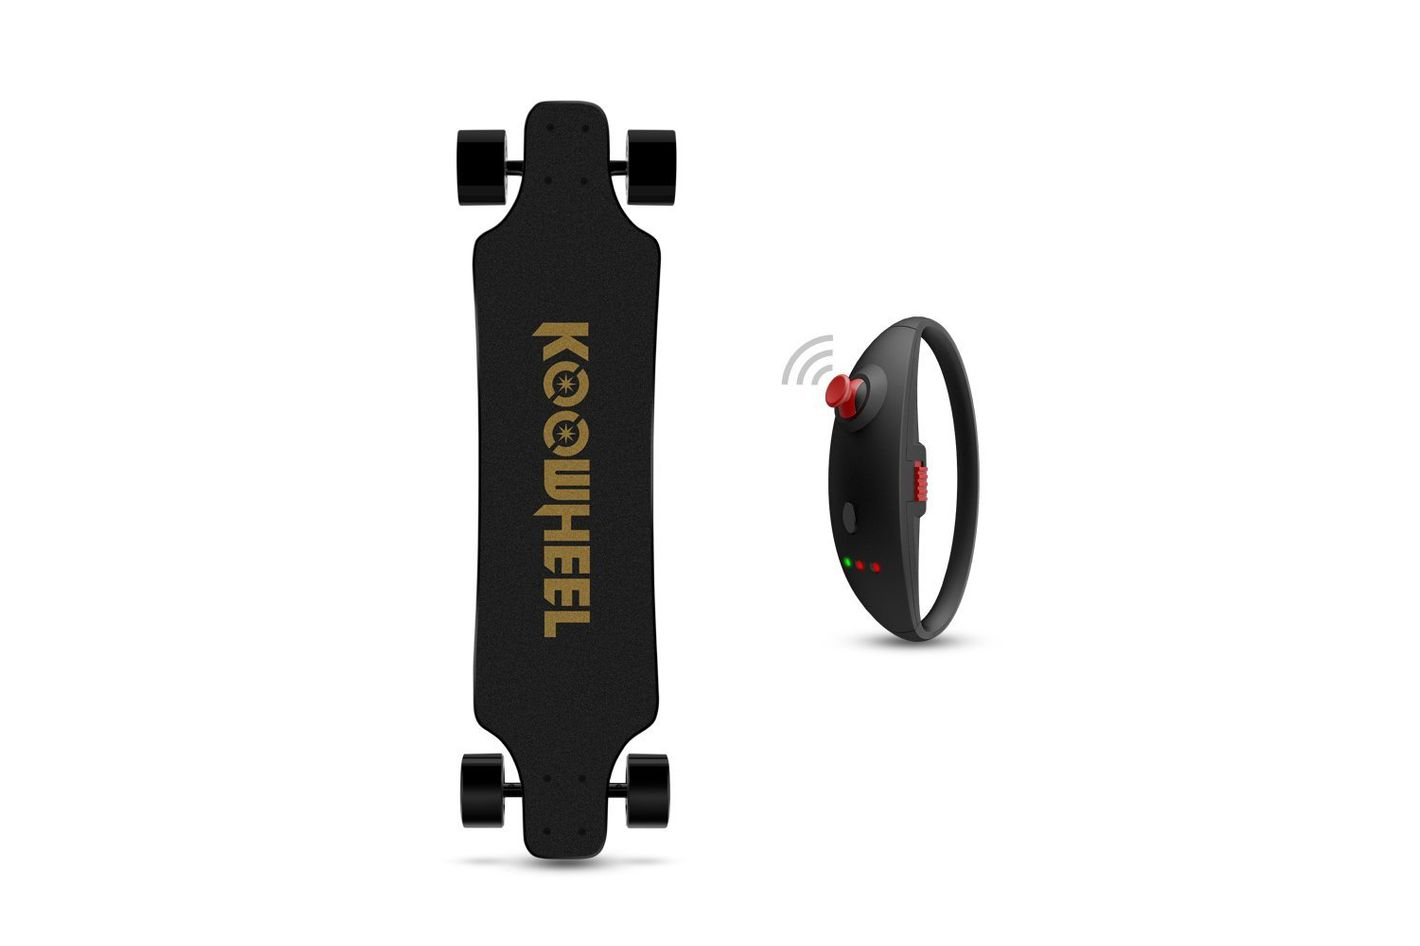 Koowheel Electric Skateboard Kooboard D3M 2nd Generation Dual Brushless Hub Motor 5500mAh Battery